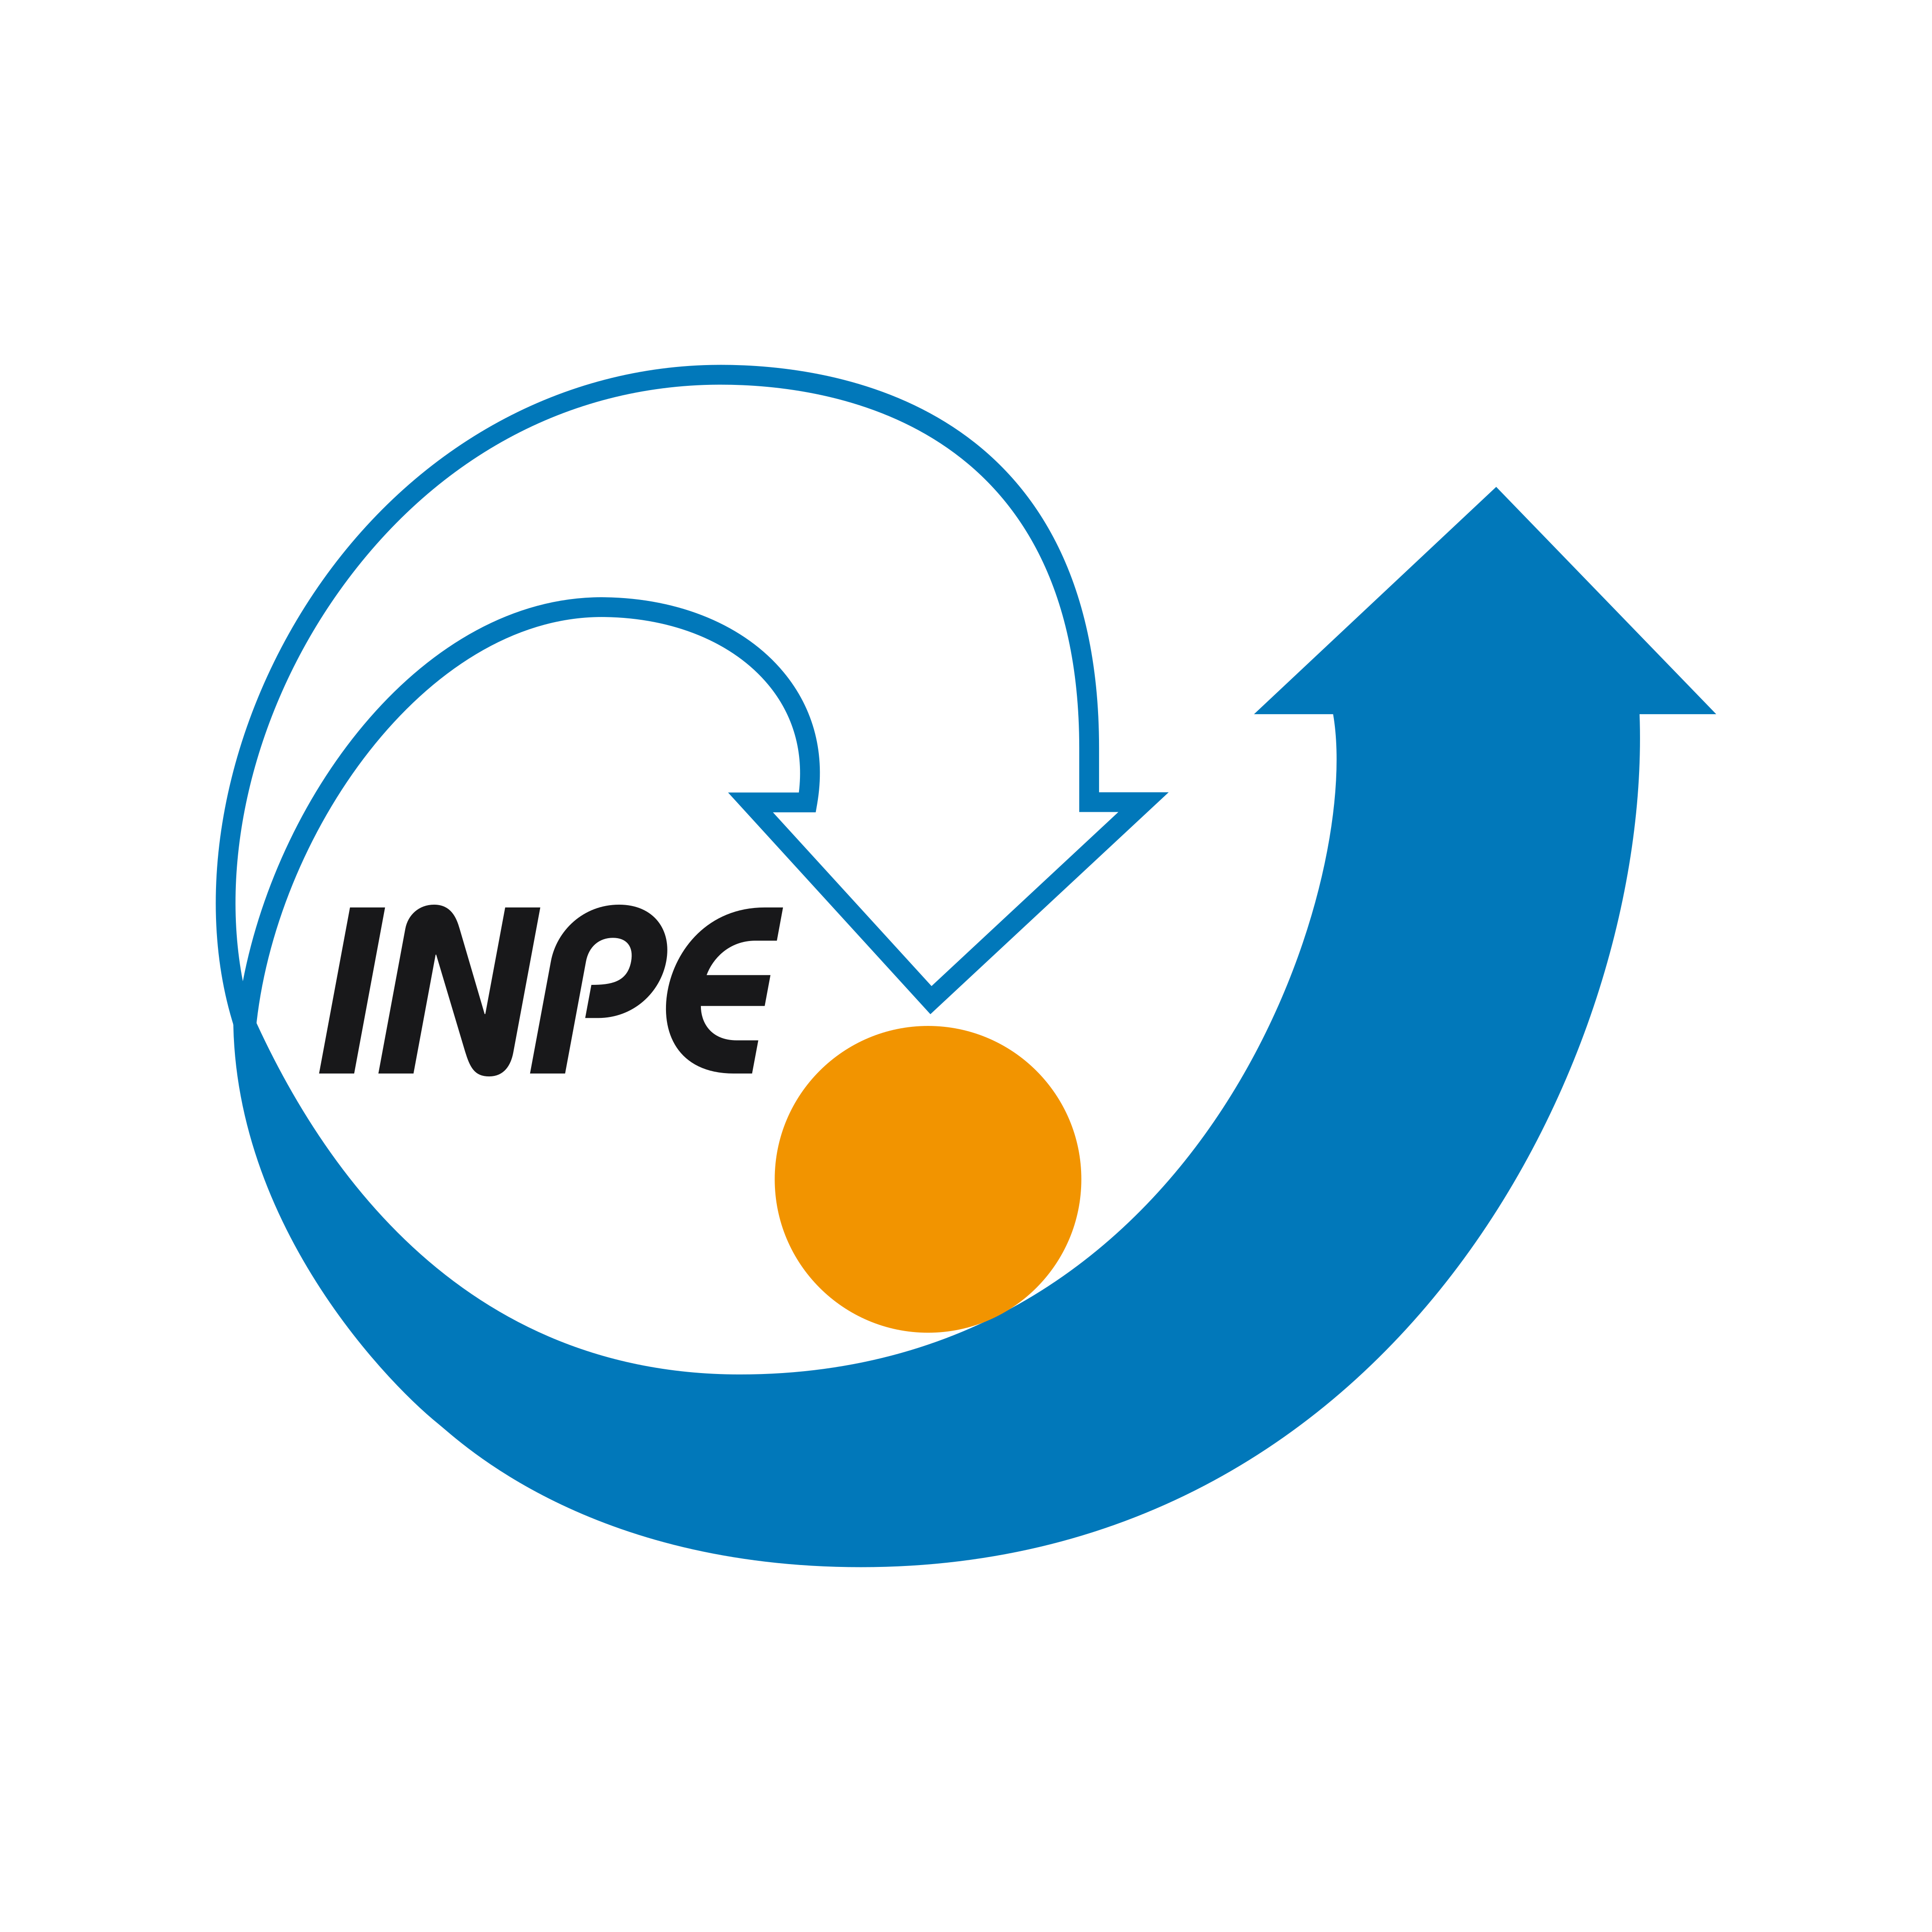 INPE Logo PNG.